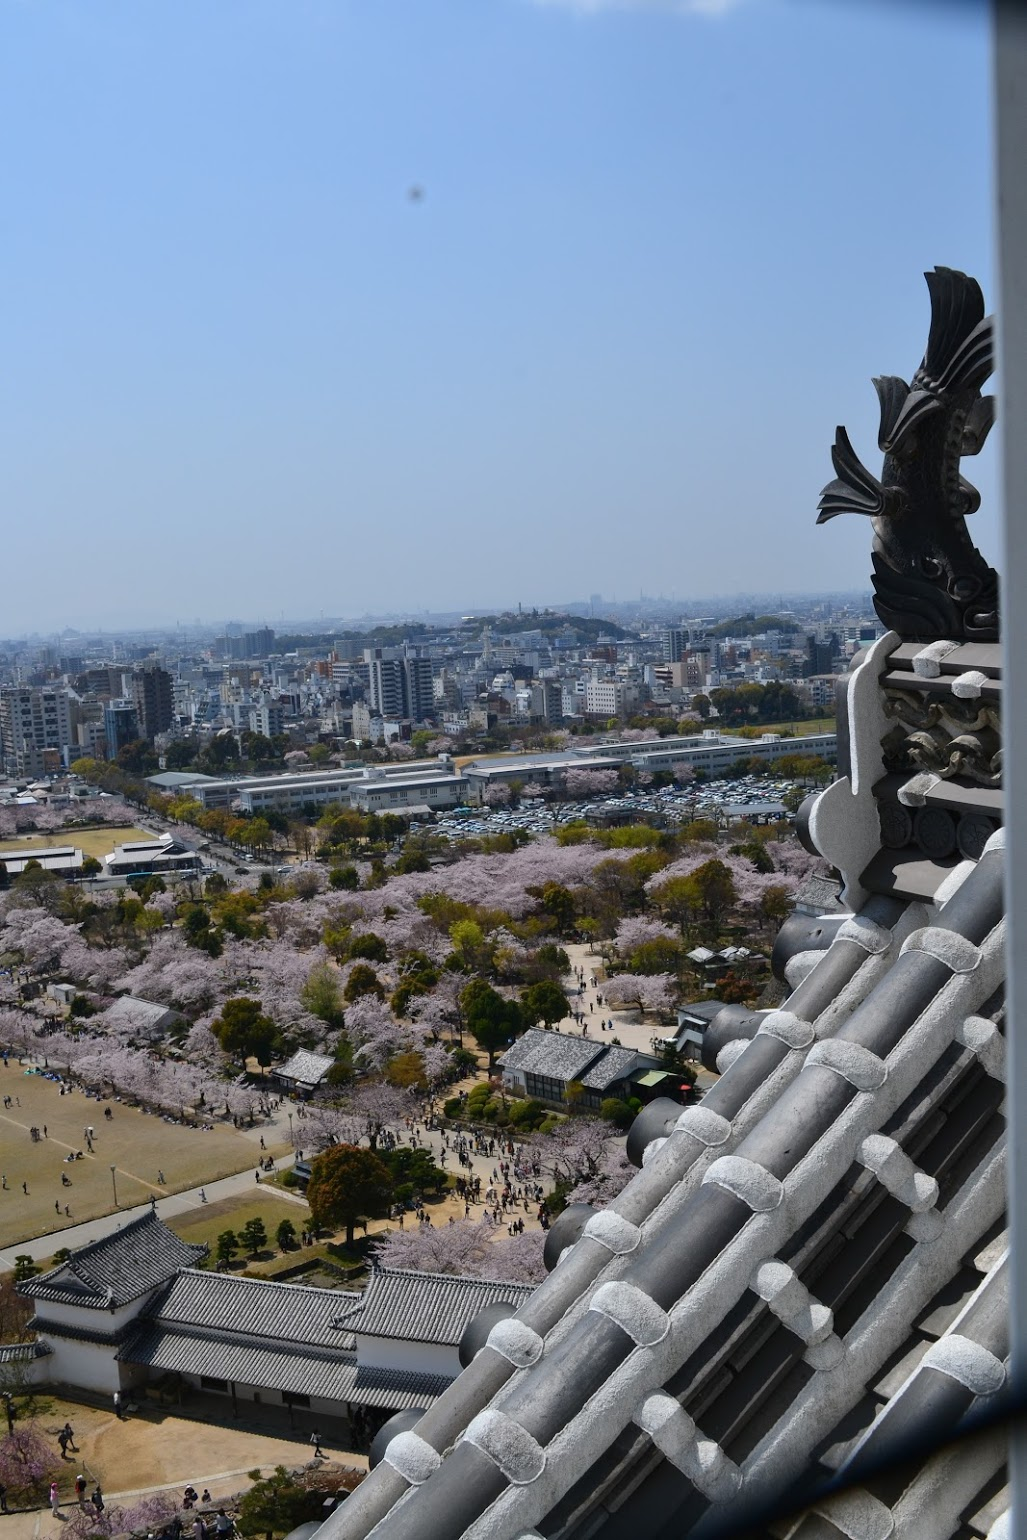 """The view of the castle grounds and the city of Himeji. The roof's """"gargoyles"""" are actually white herons, which is also the nickname of Himeji Castle: White Heron Castle."""